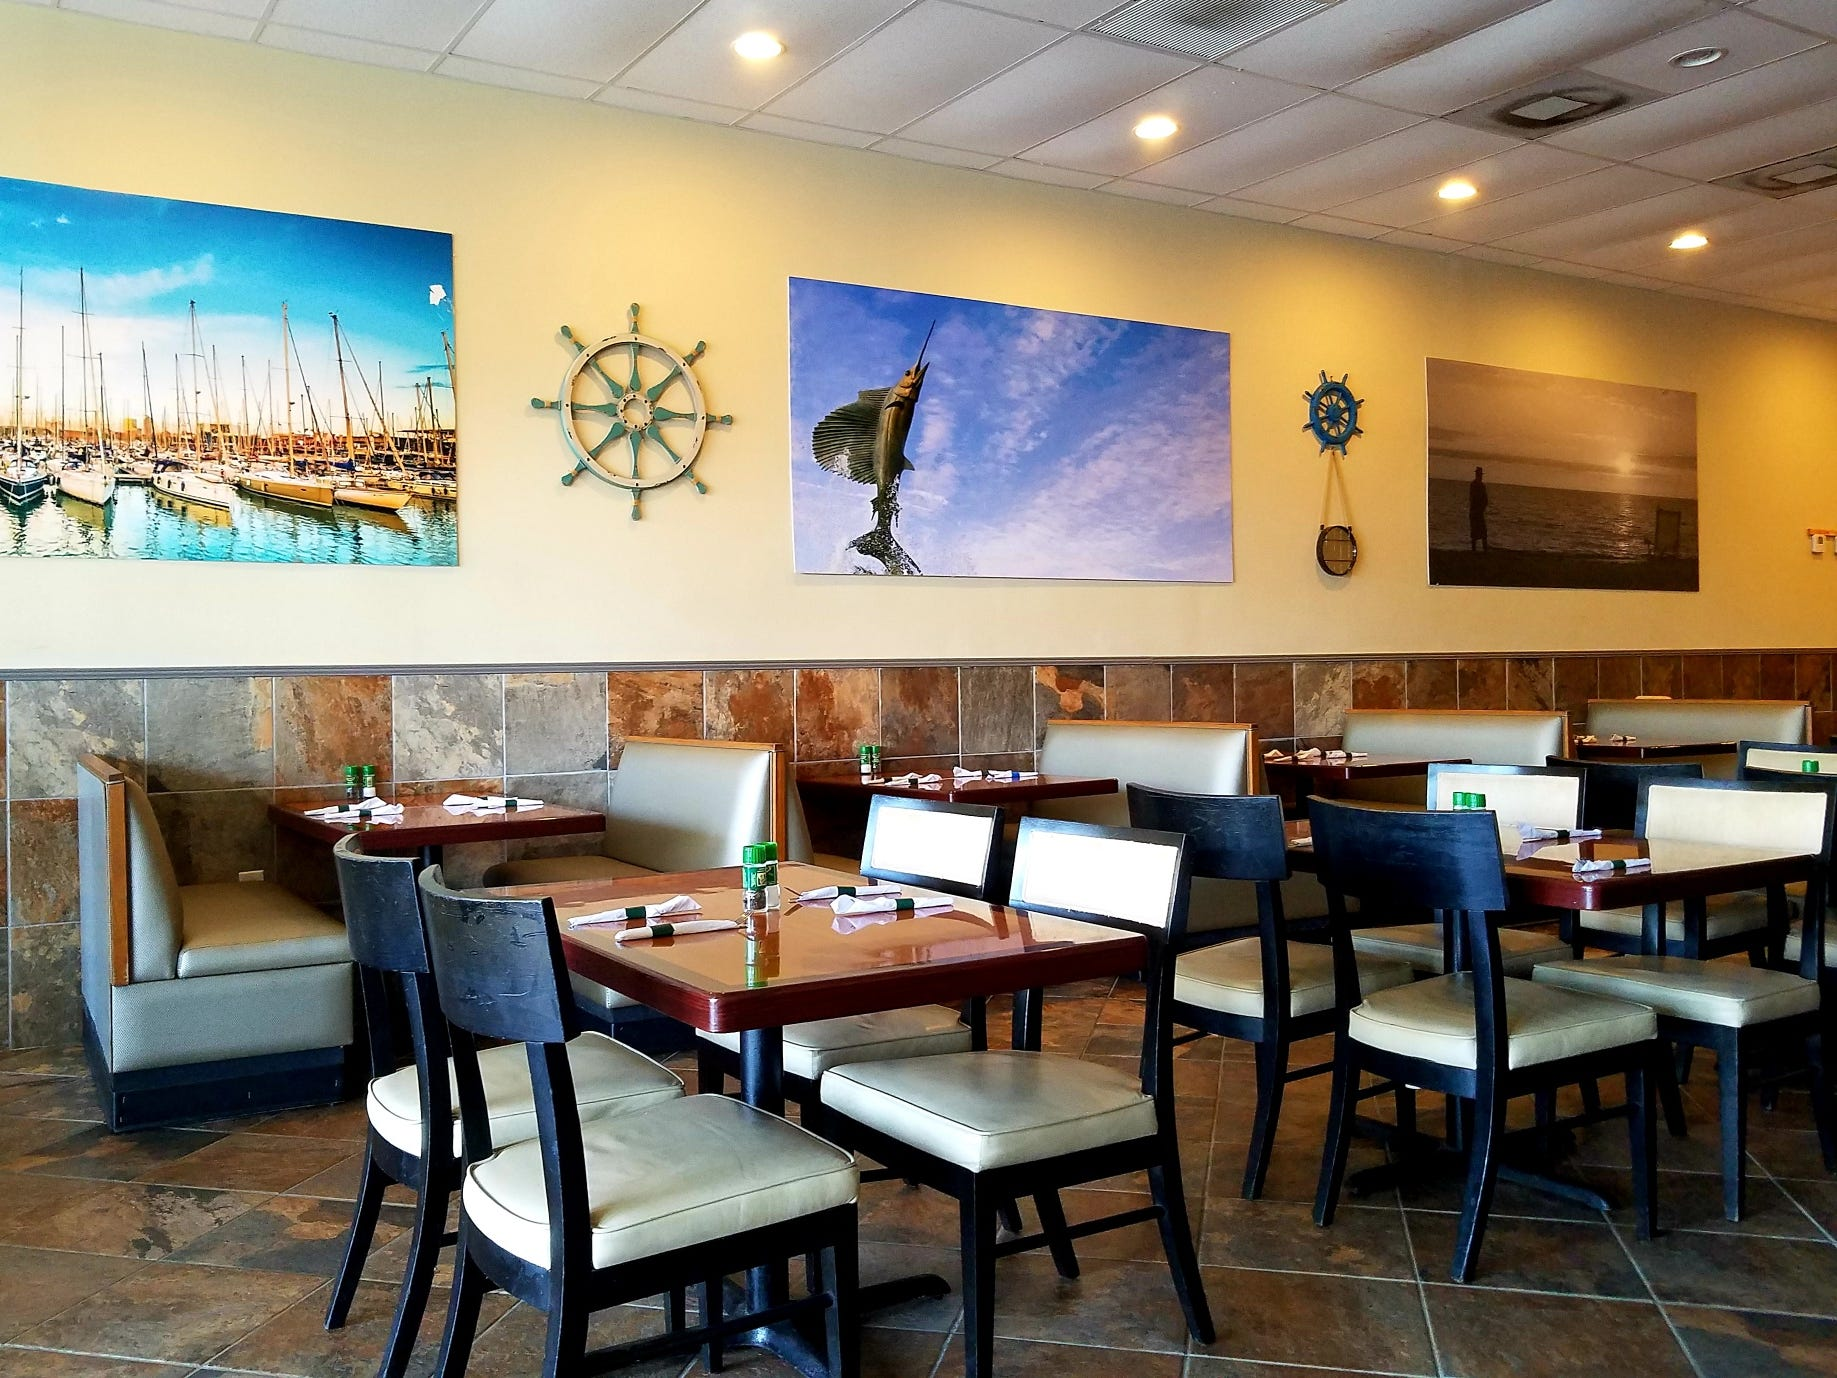 The interior of Three Little Birds Cafe  provides customers with new booths and tables, in a bright and clean atmosphere.